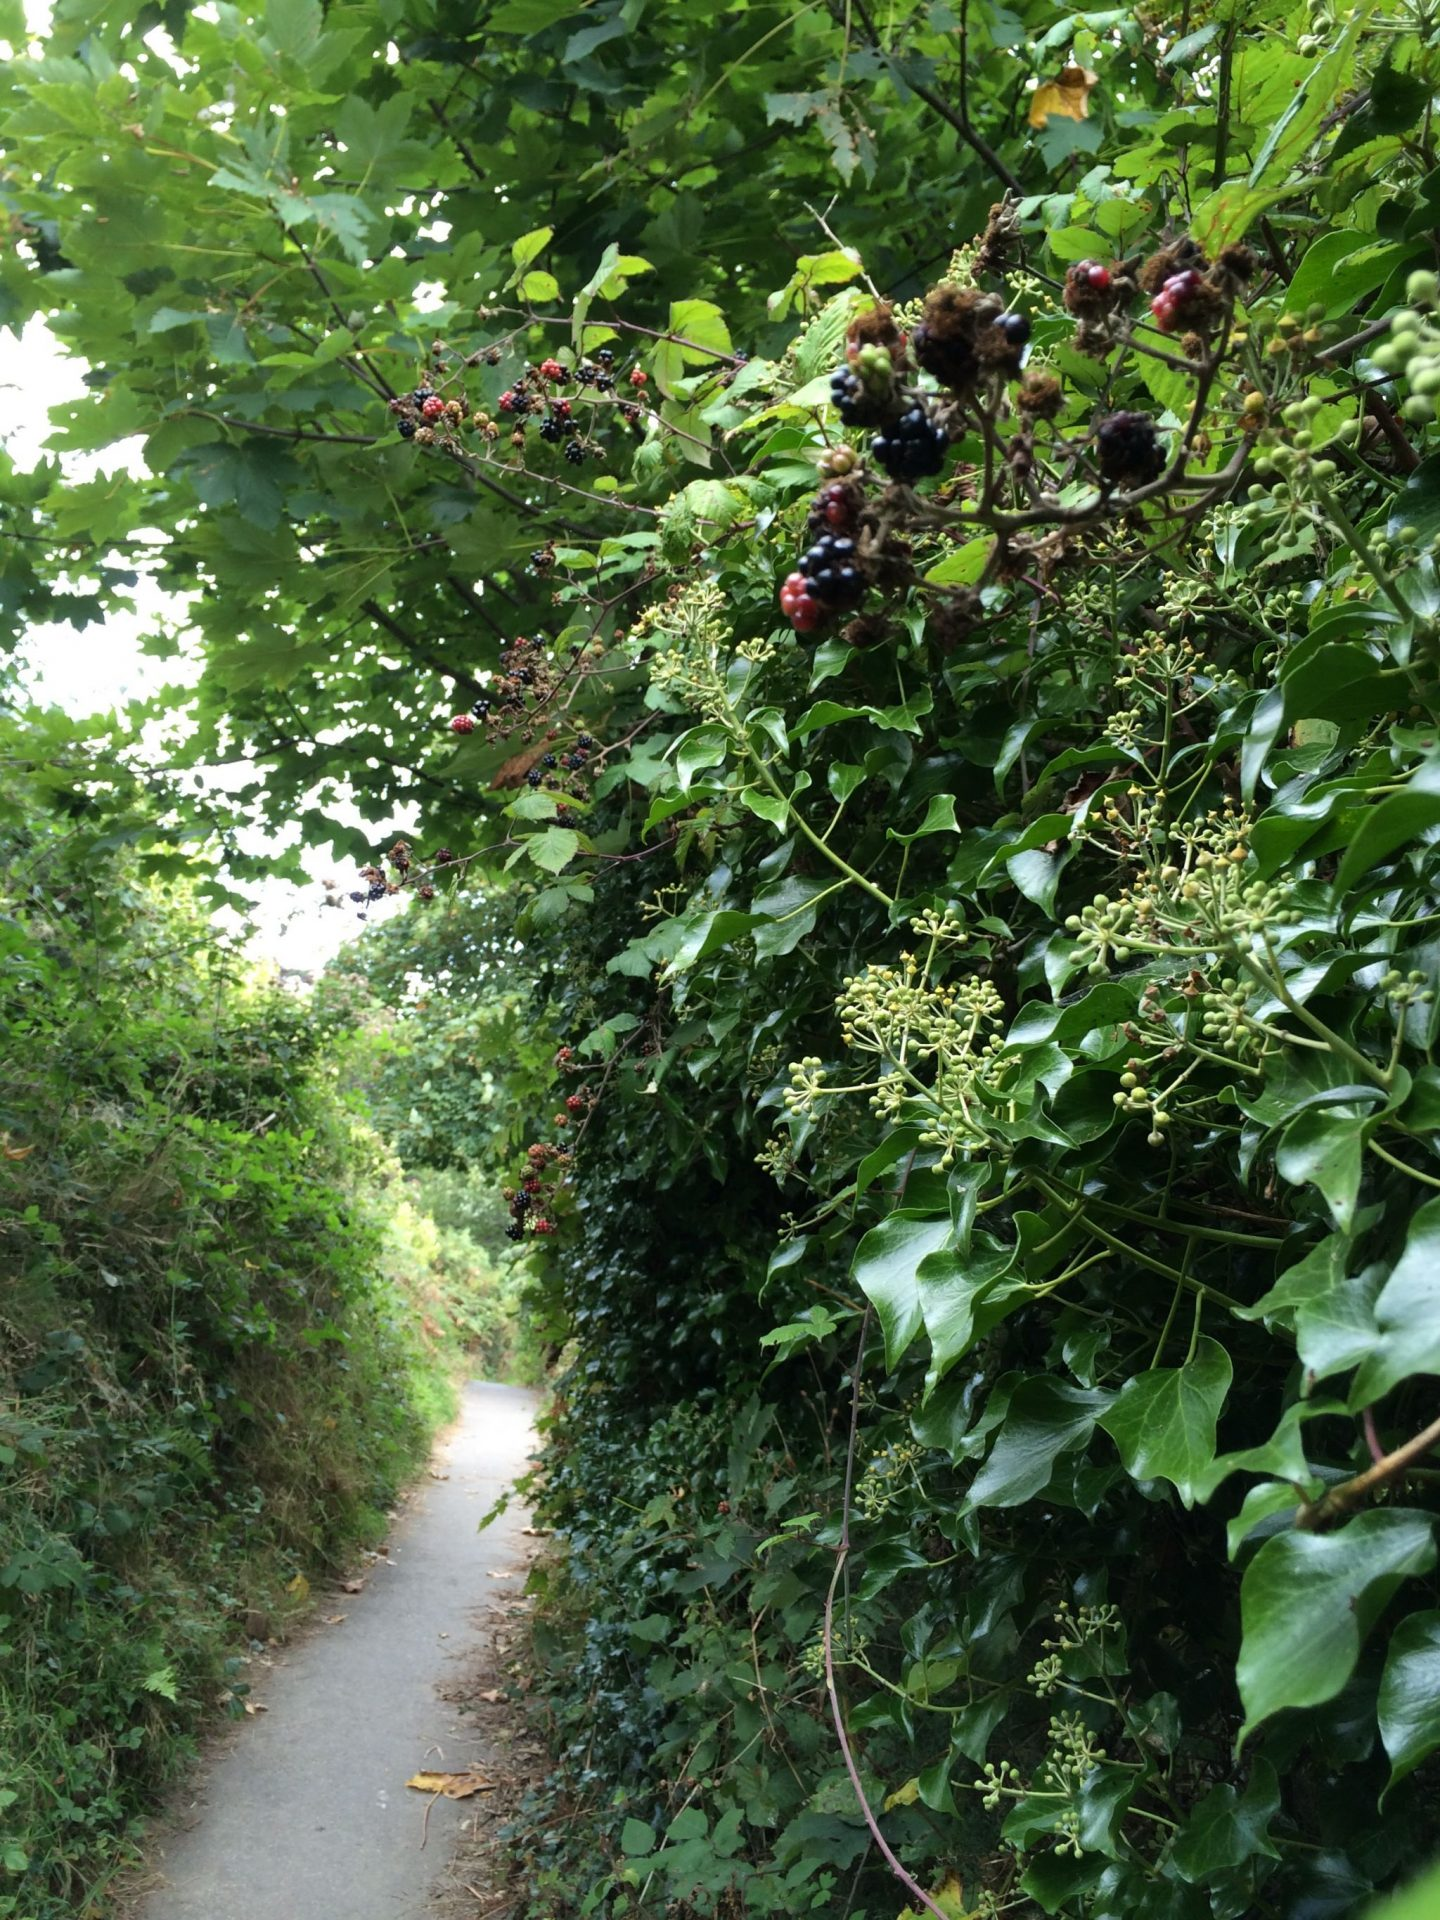 Carbis Bay to St Ives trail with blackberries